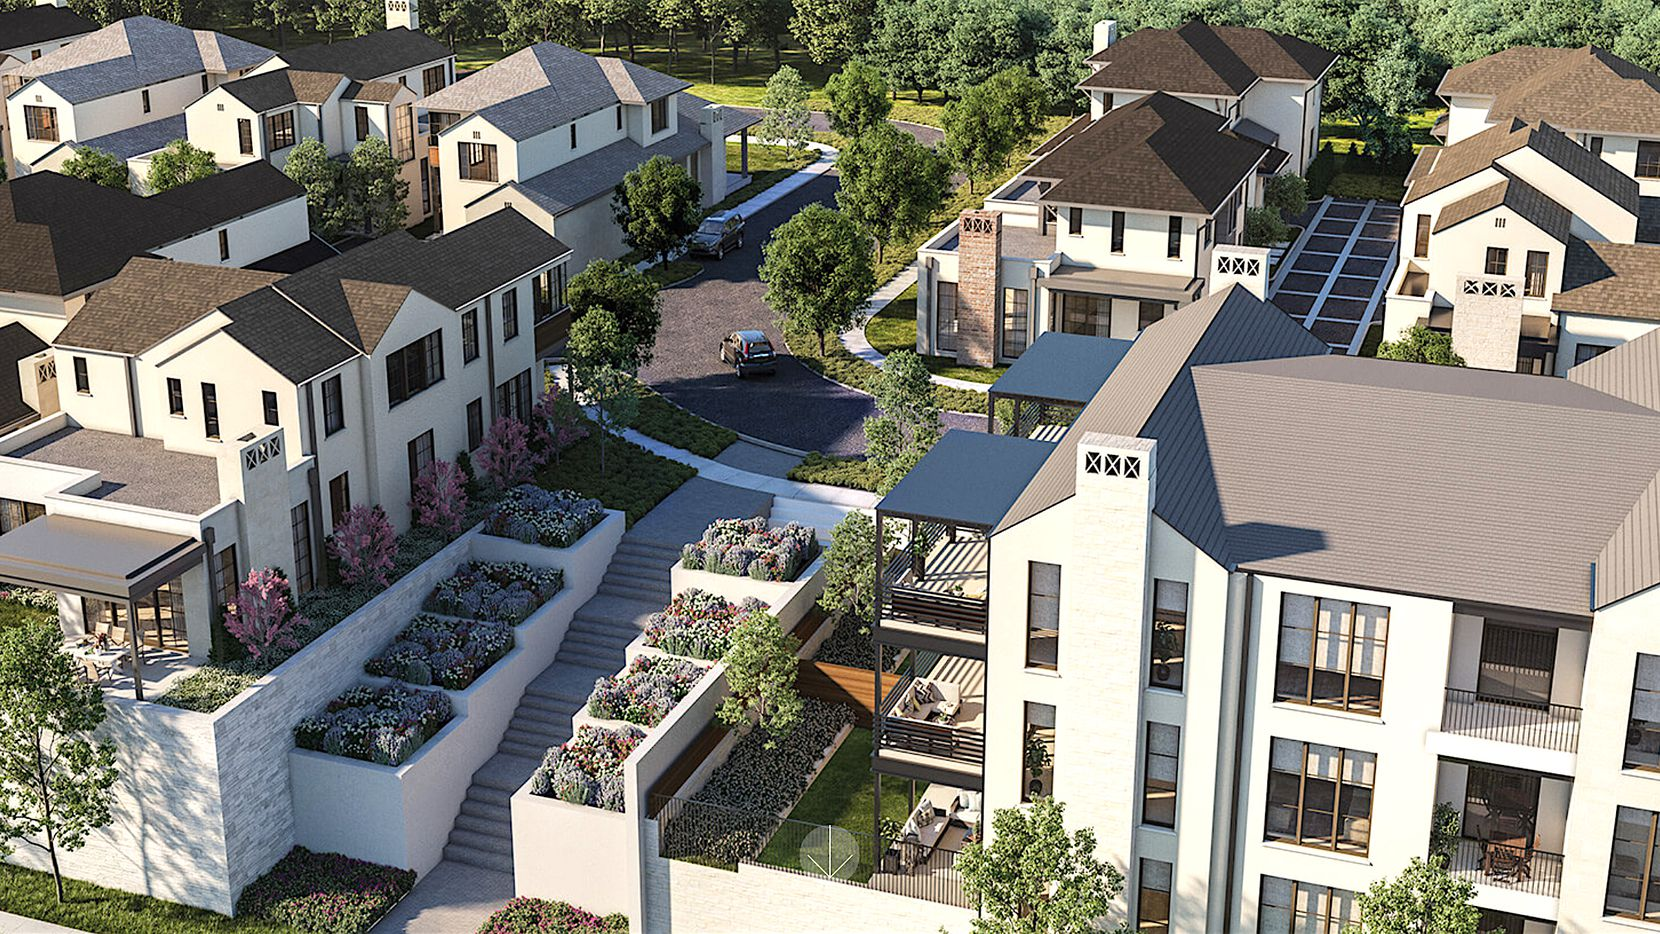 The new Preston Hollow Village residential community will include 75 houses and condos.